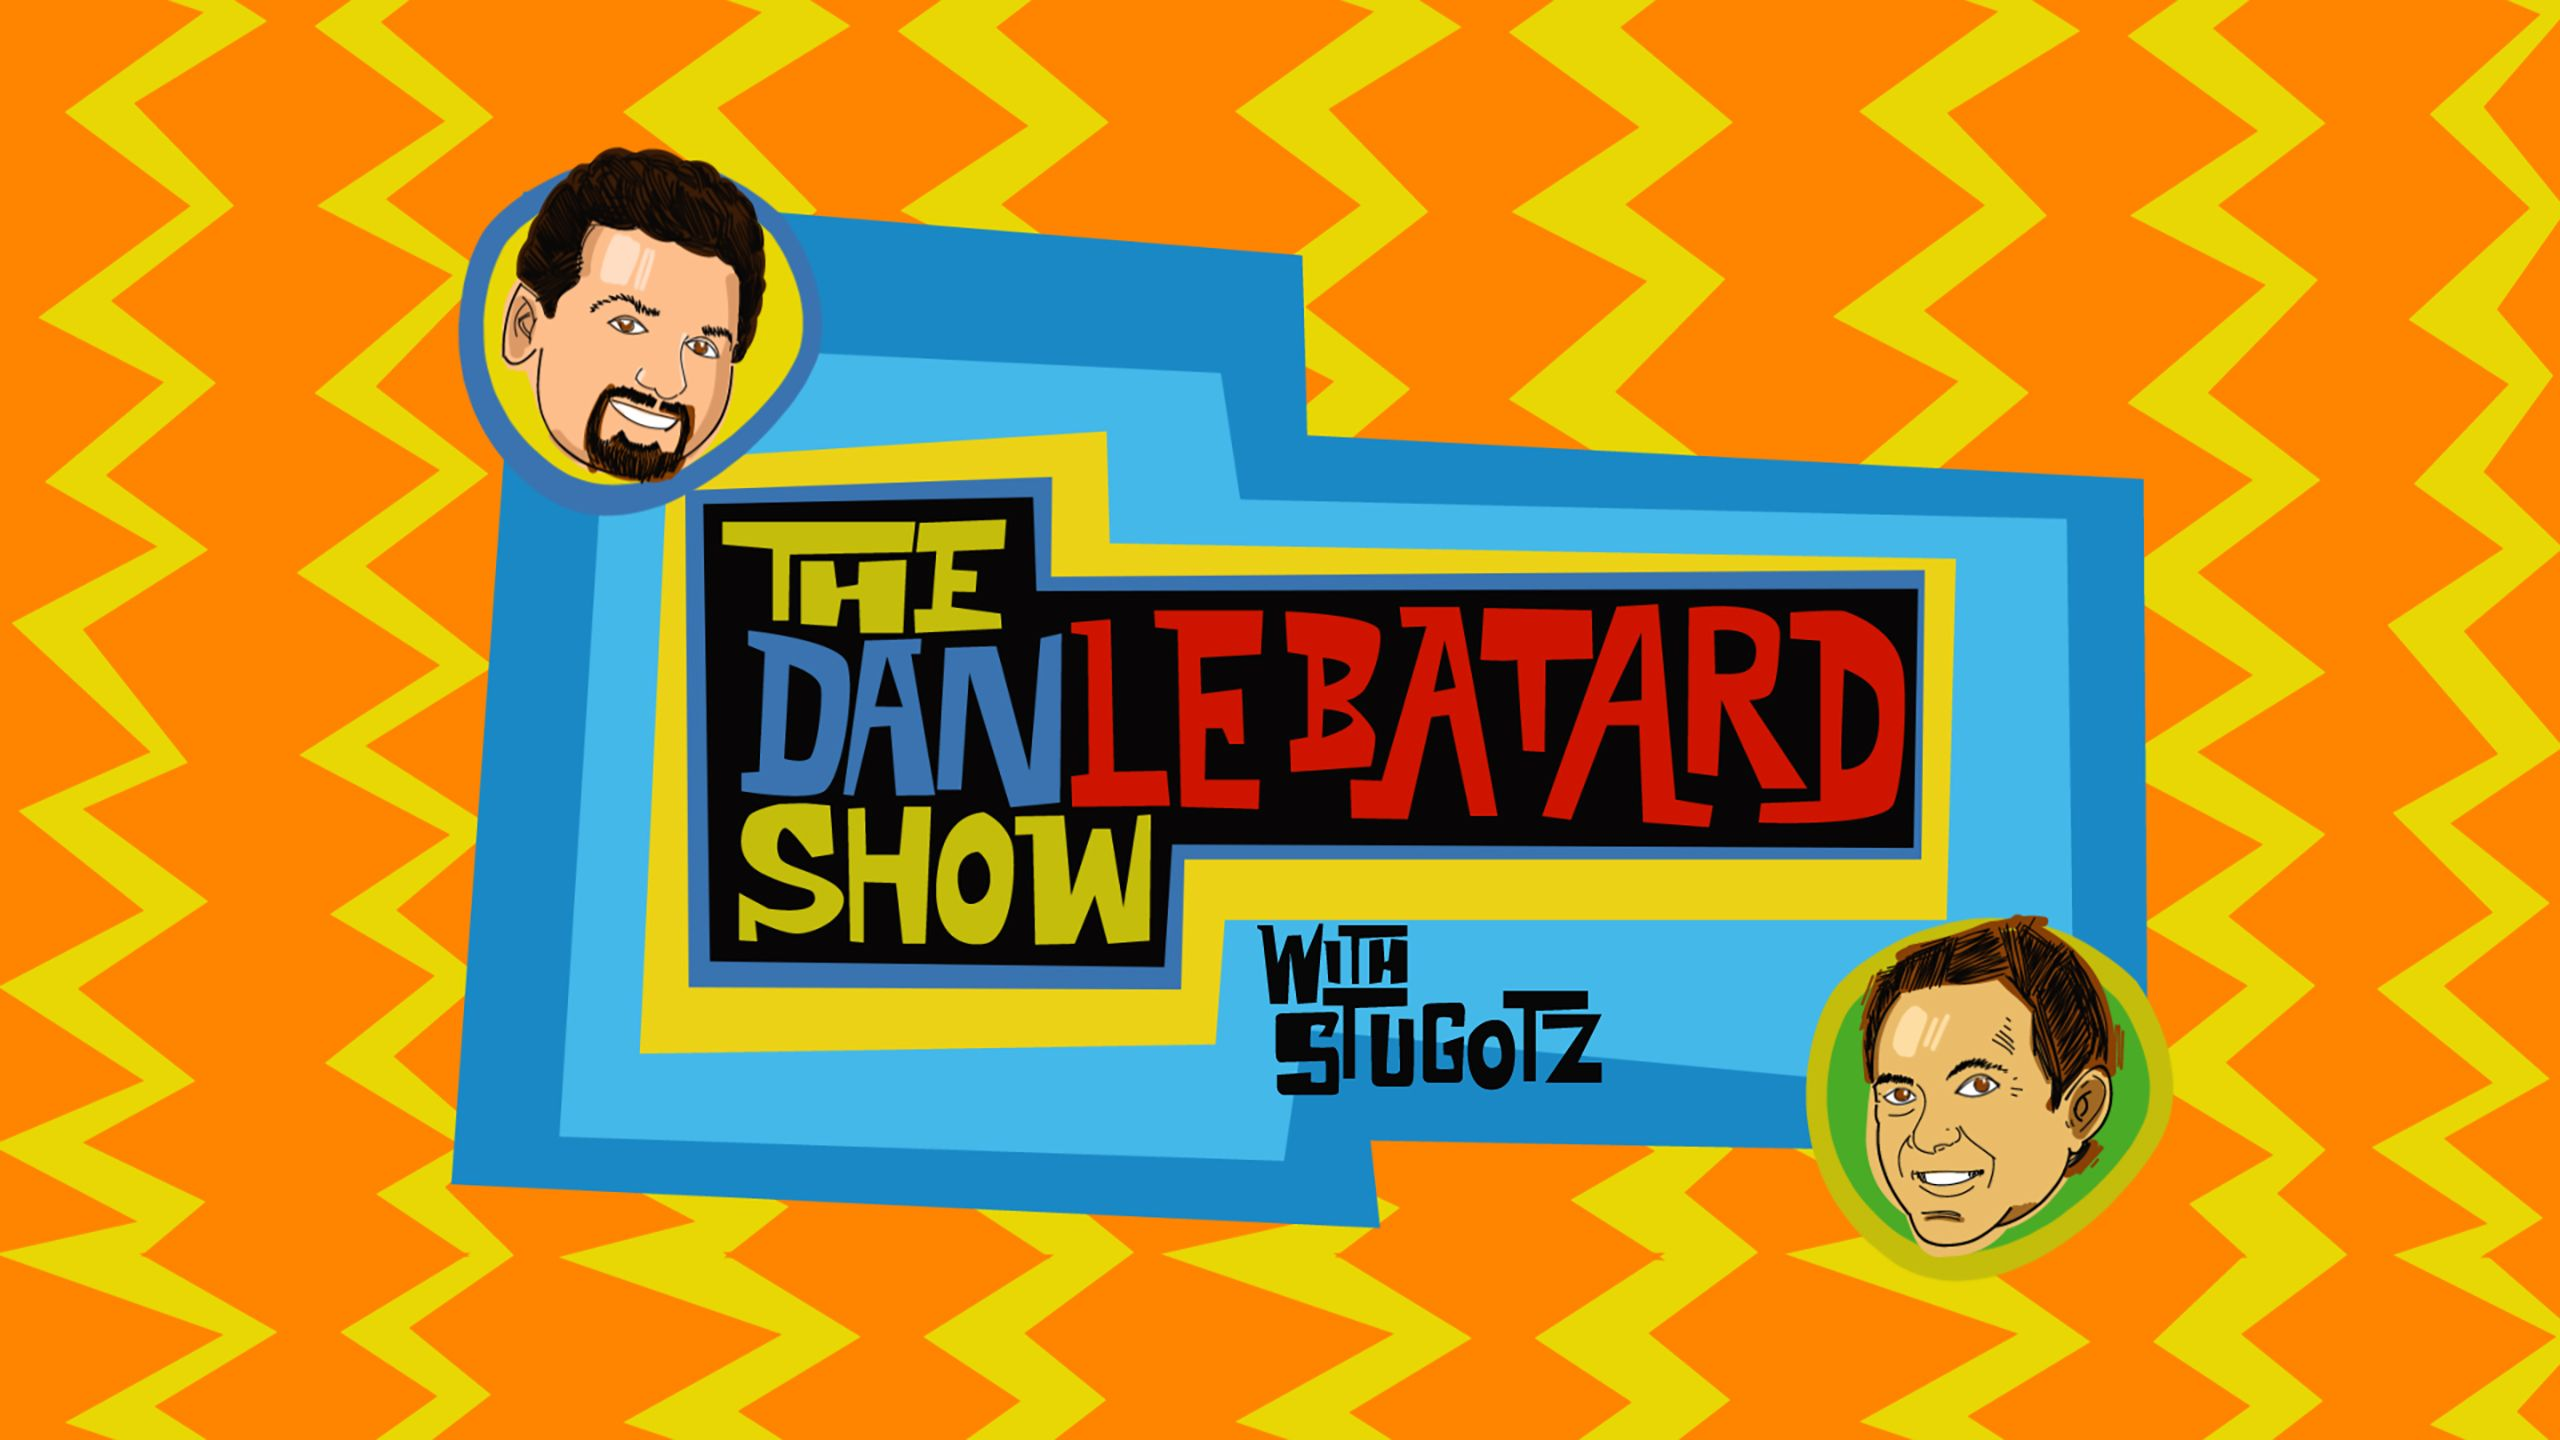 Thu, 1/18 - The Dan Le Batard Show with Stugotz Presented by Progressive